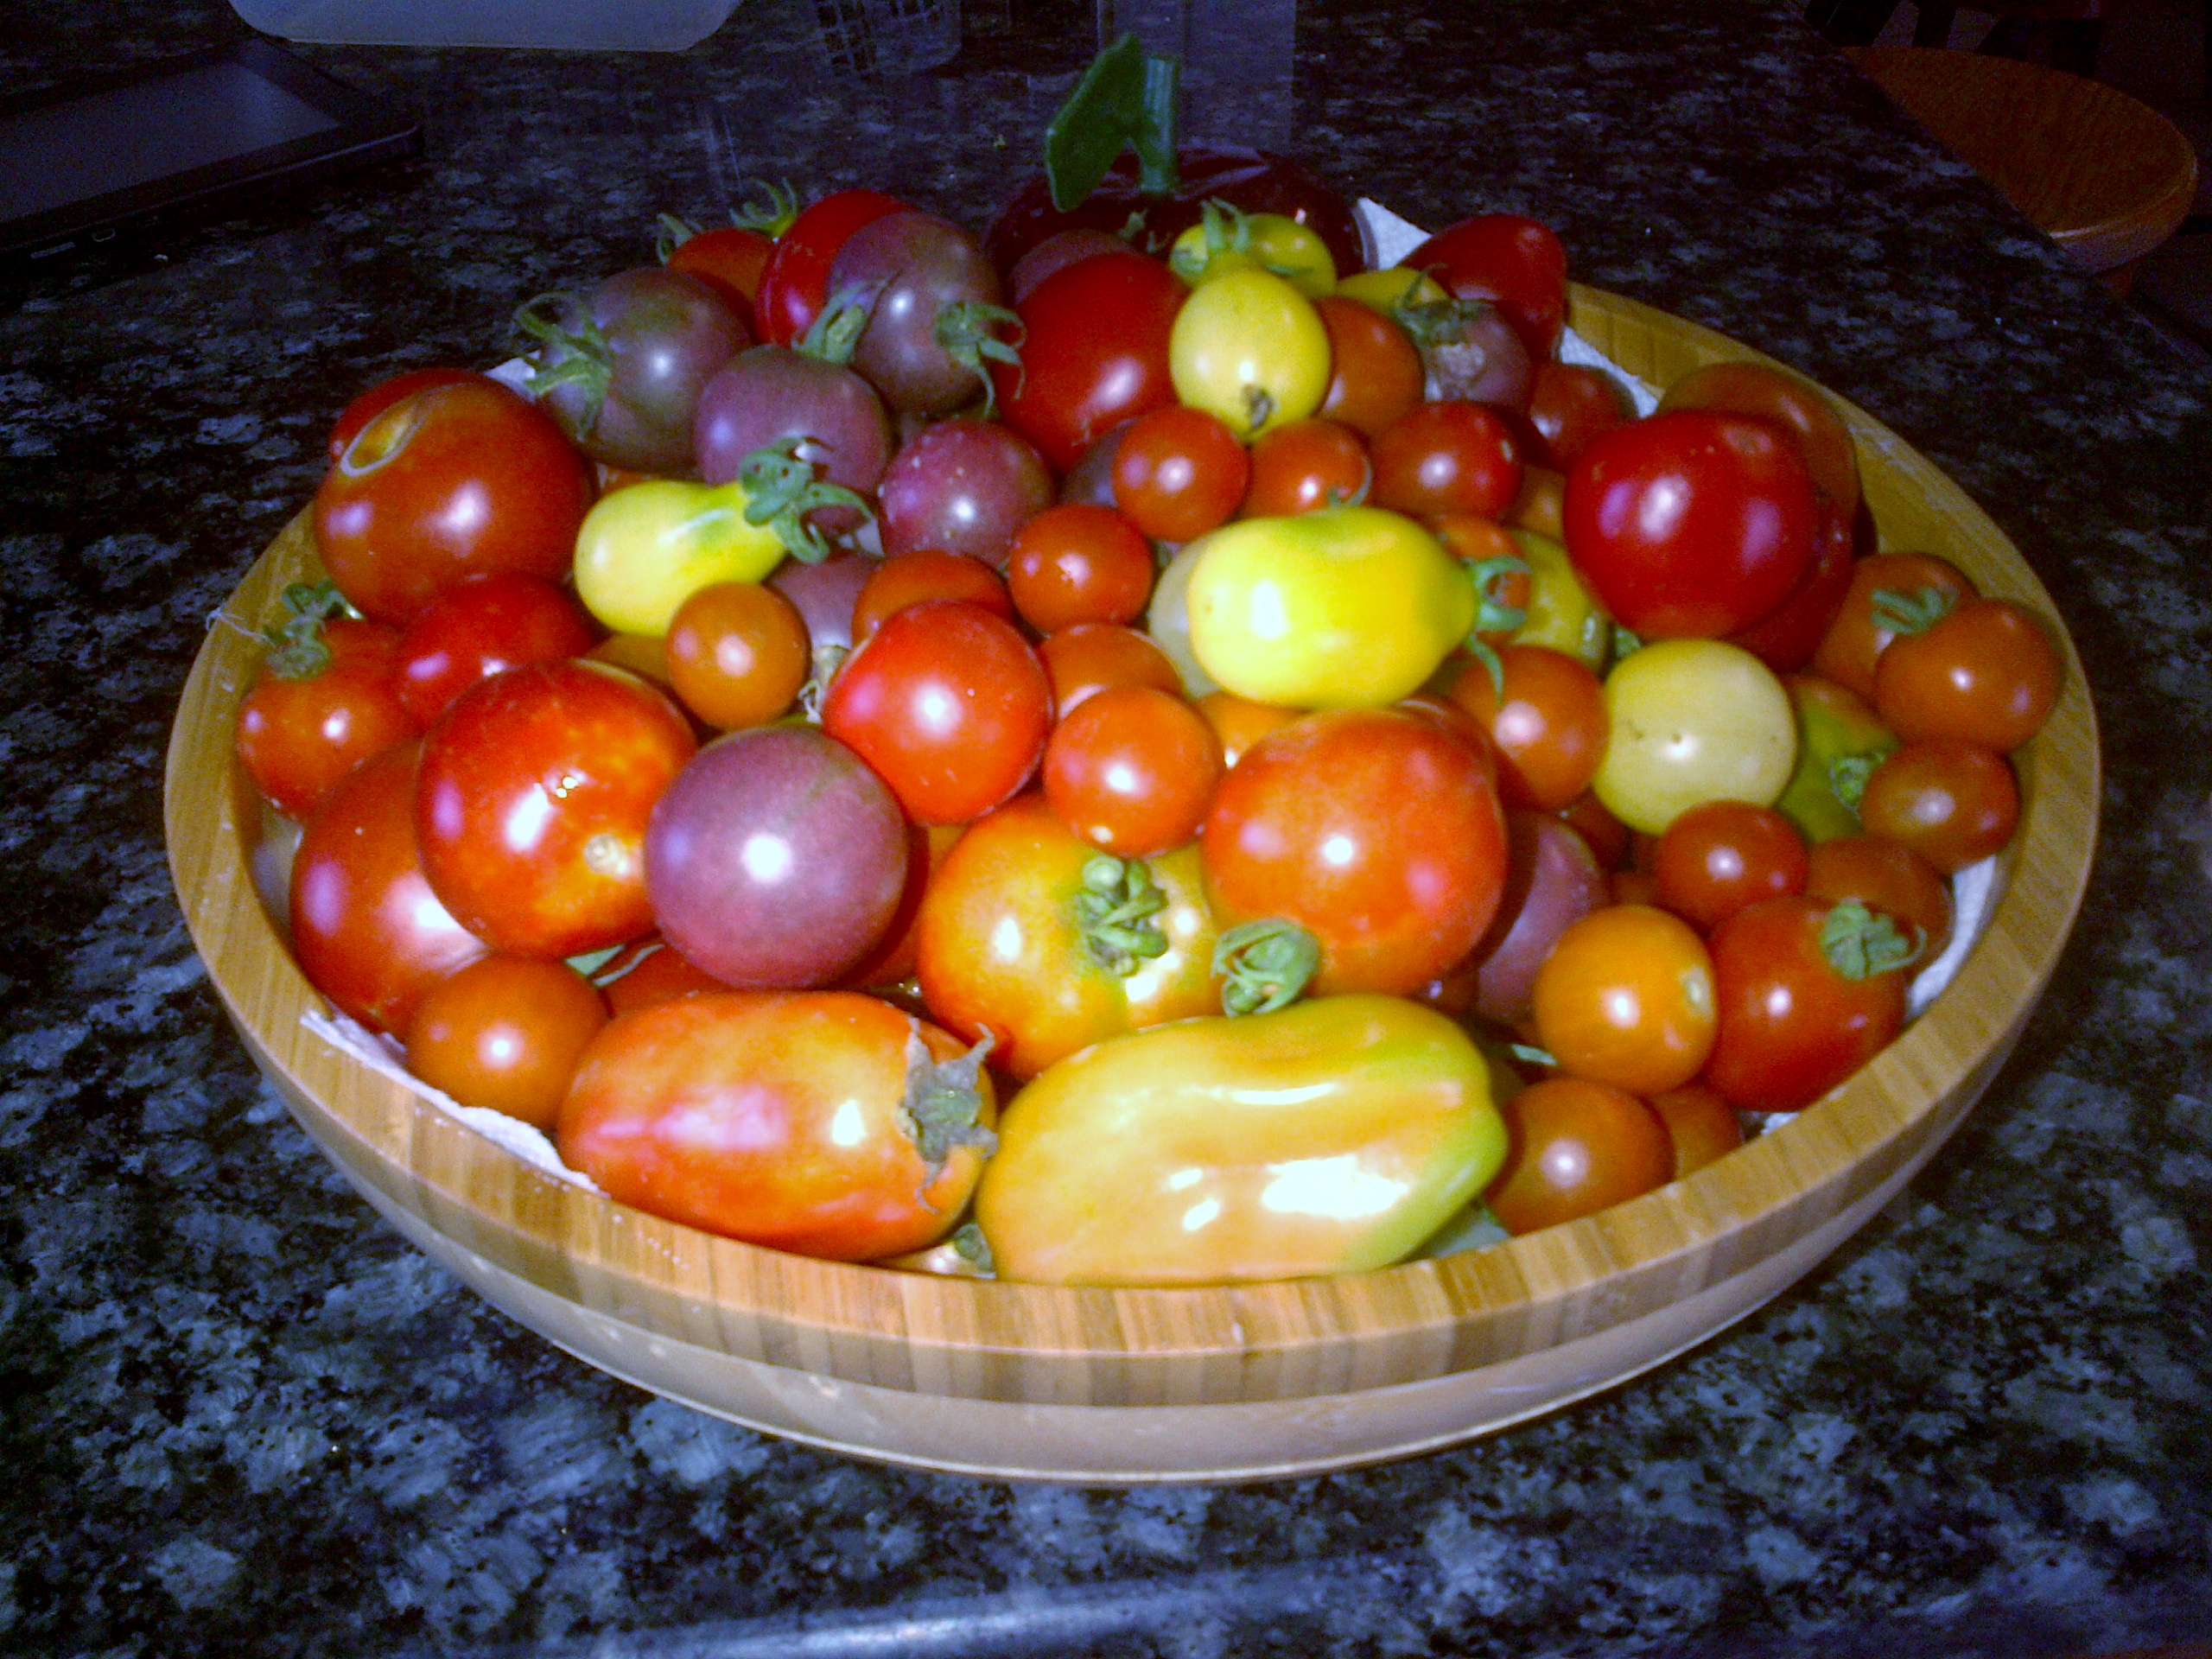 Tomatoes: Heirloom or Hybrid